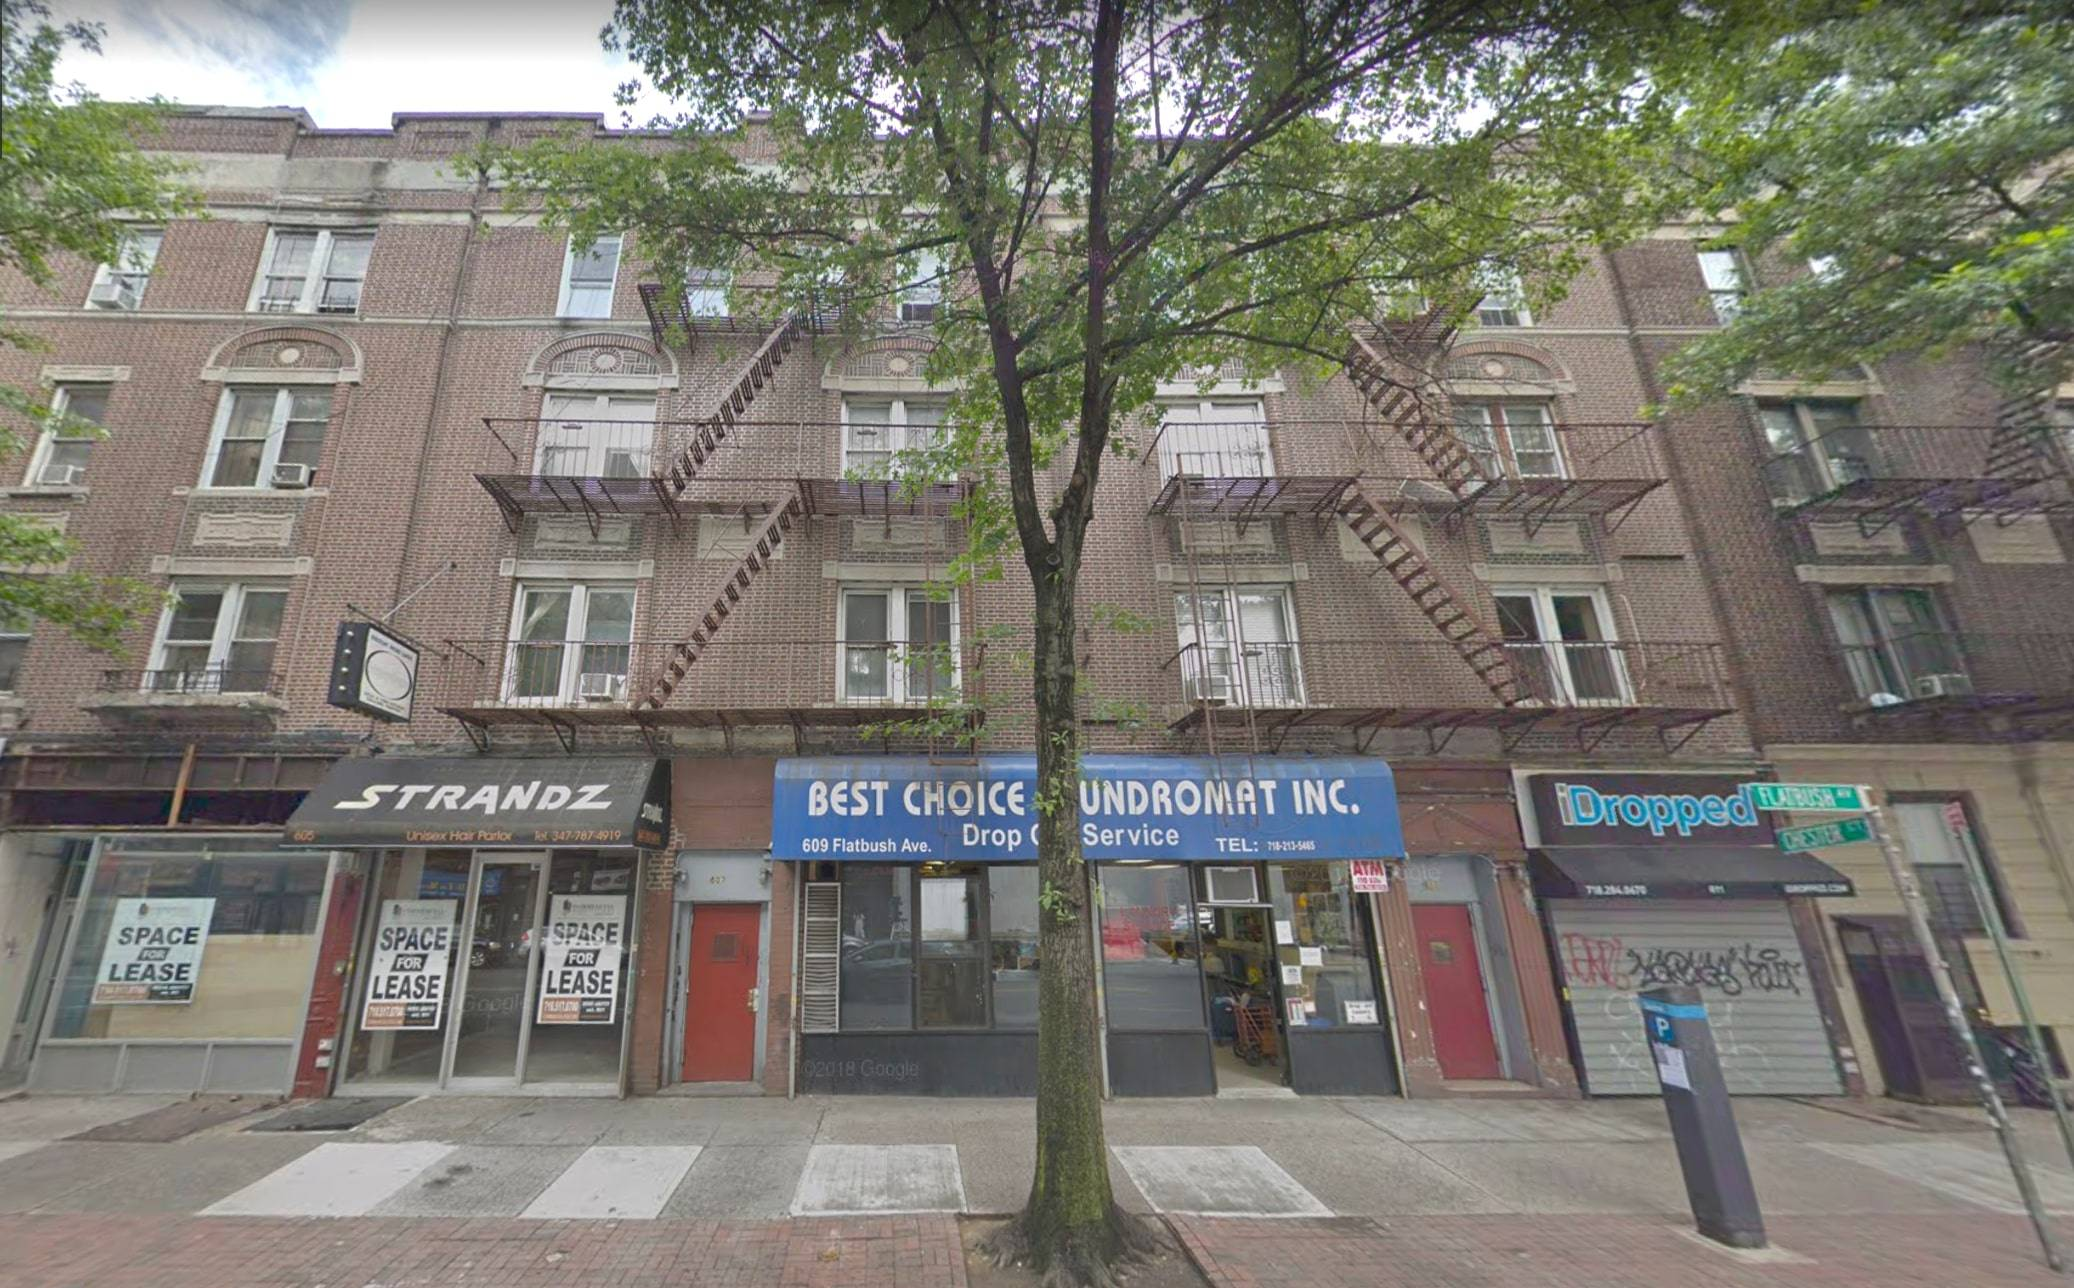 The rent-stabilized tenants claim their landlord mocks, threatens and gaslights them when they request repairs or complain about the illegal Airbnb units.